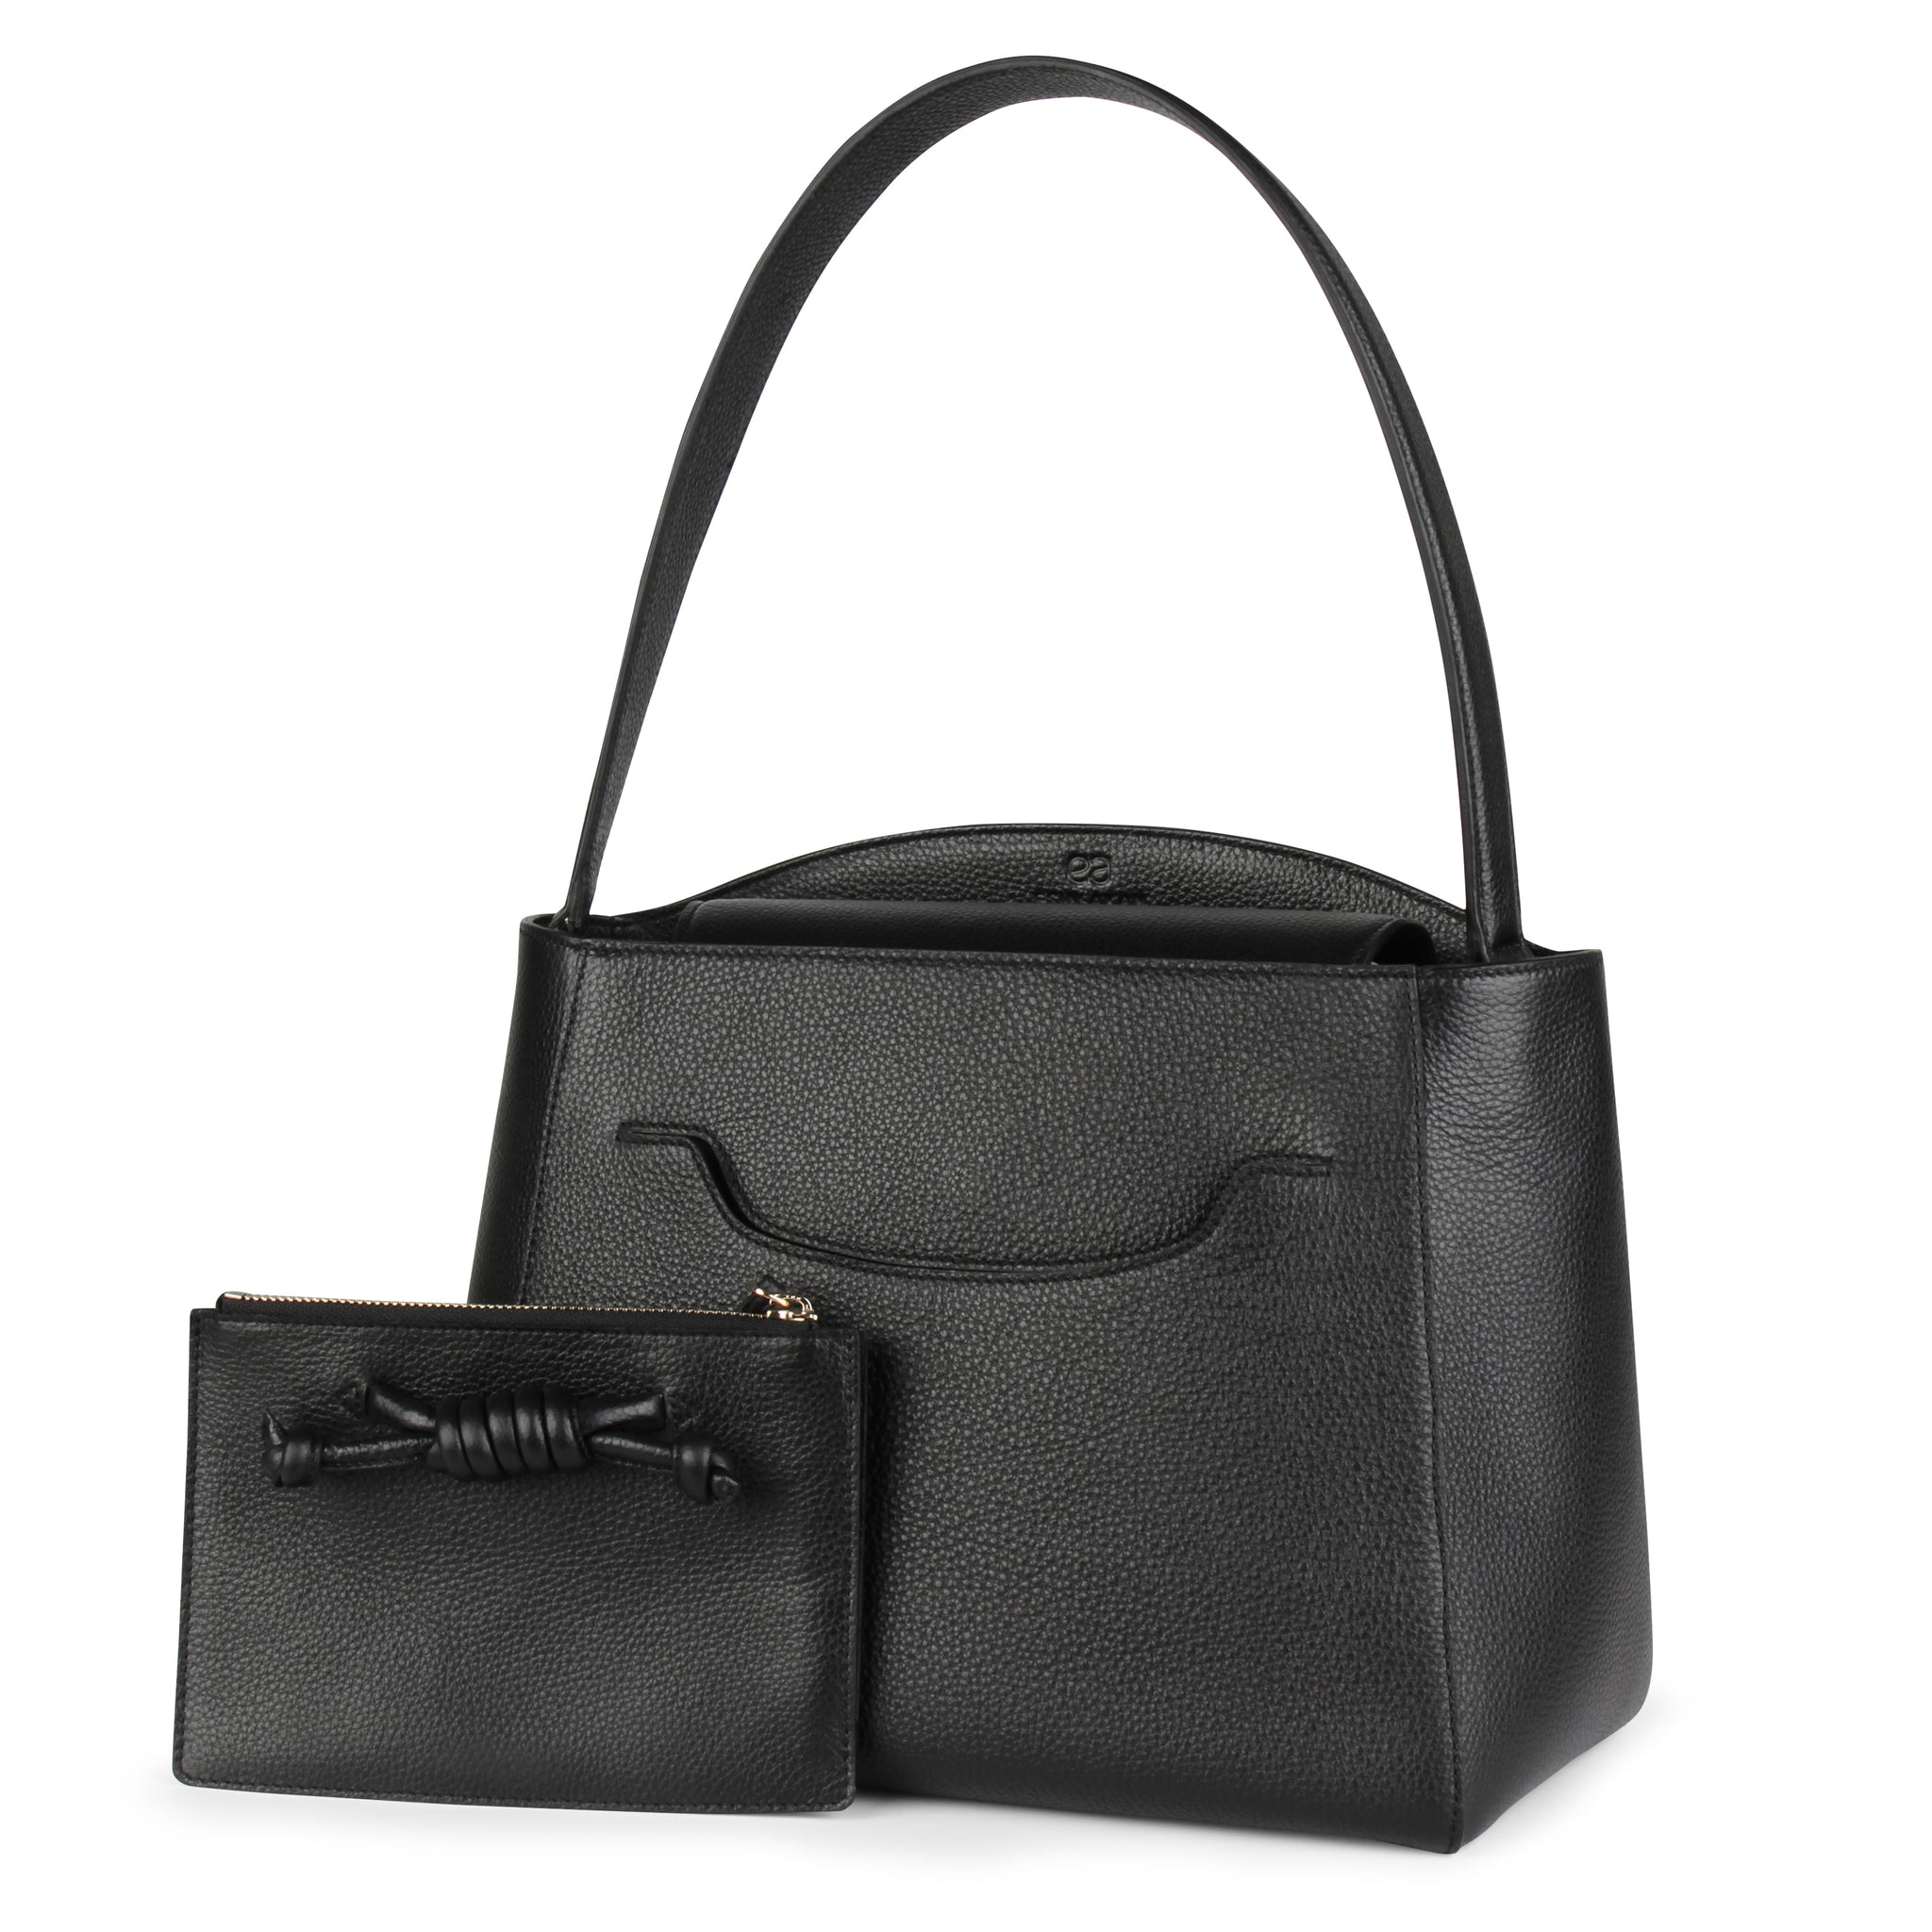 A convertible leather tote bag black with a detachable clutch in front, front image.